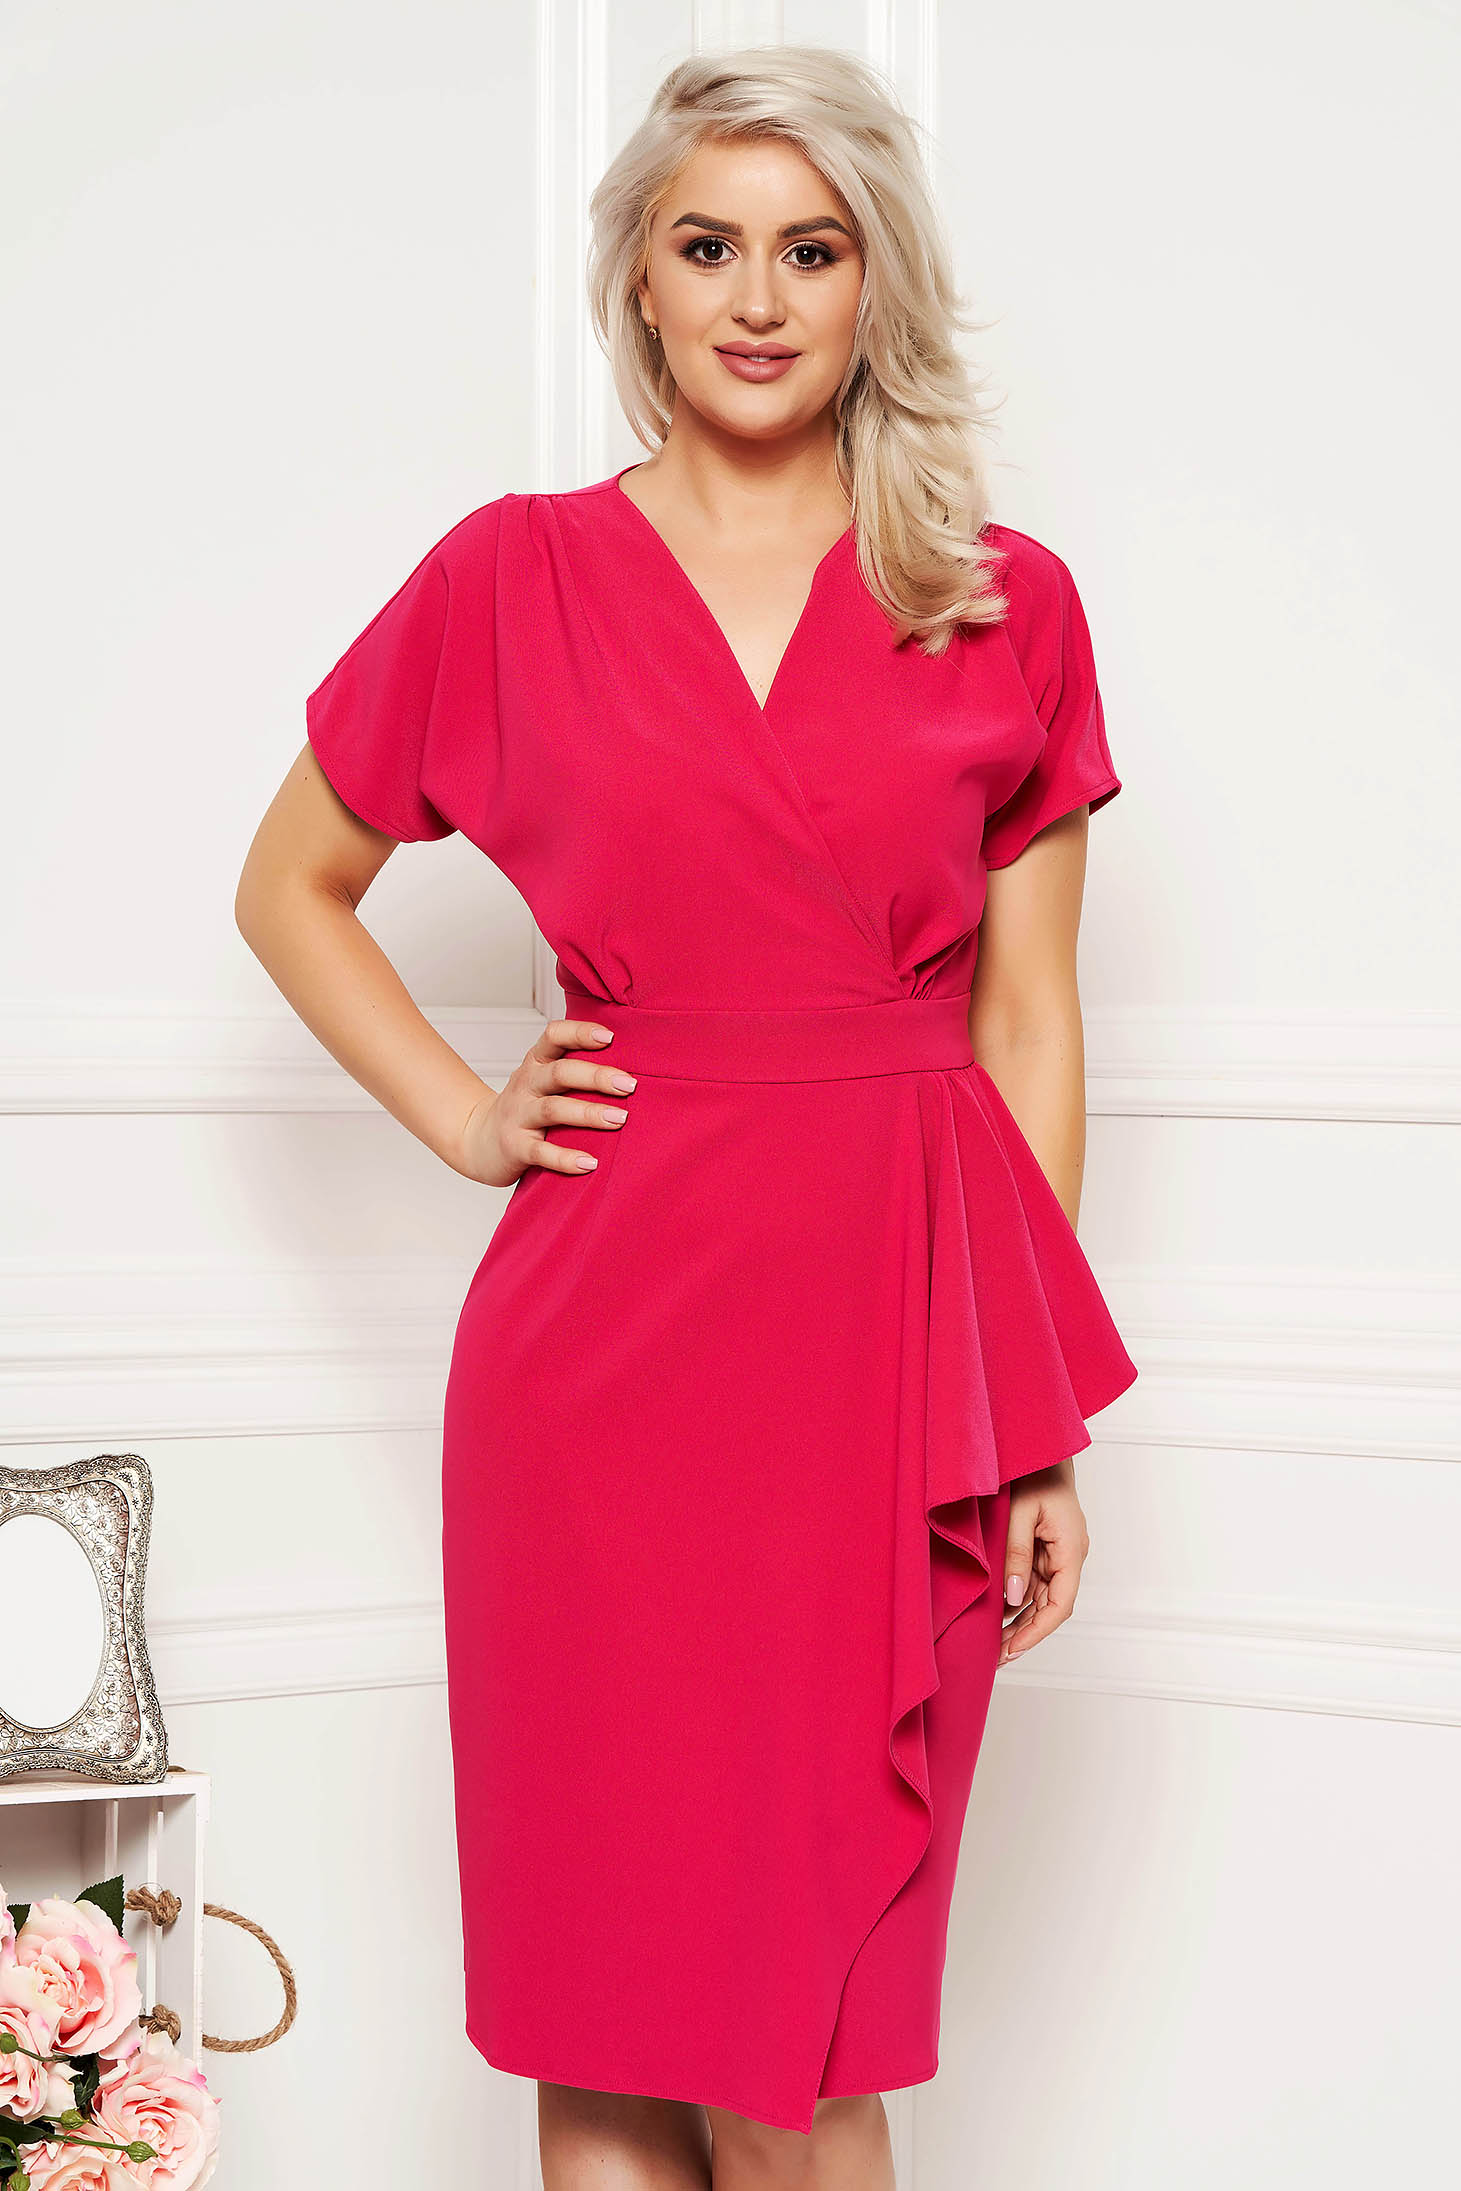 Fuchsia dress elegant midi cut material with v-neckline cloth pencil with ruffle details